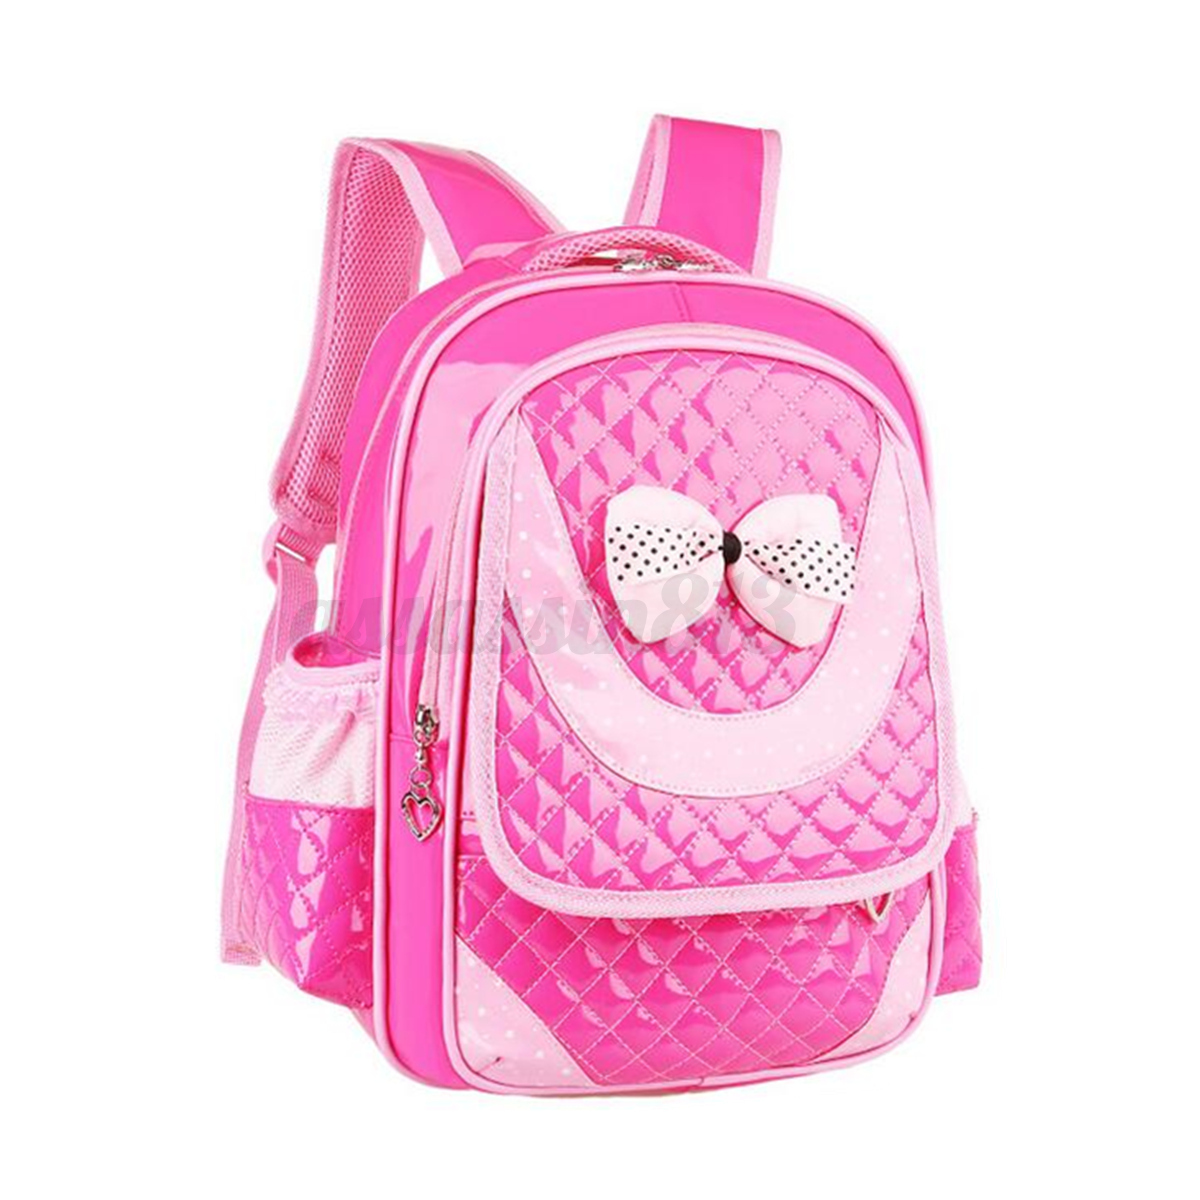 Kids' Backpacks. Whether you're on the hunt for a preschooler's very first backpack or a fourth-grader's school pack, Amazon has a huge selection to choose from.